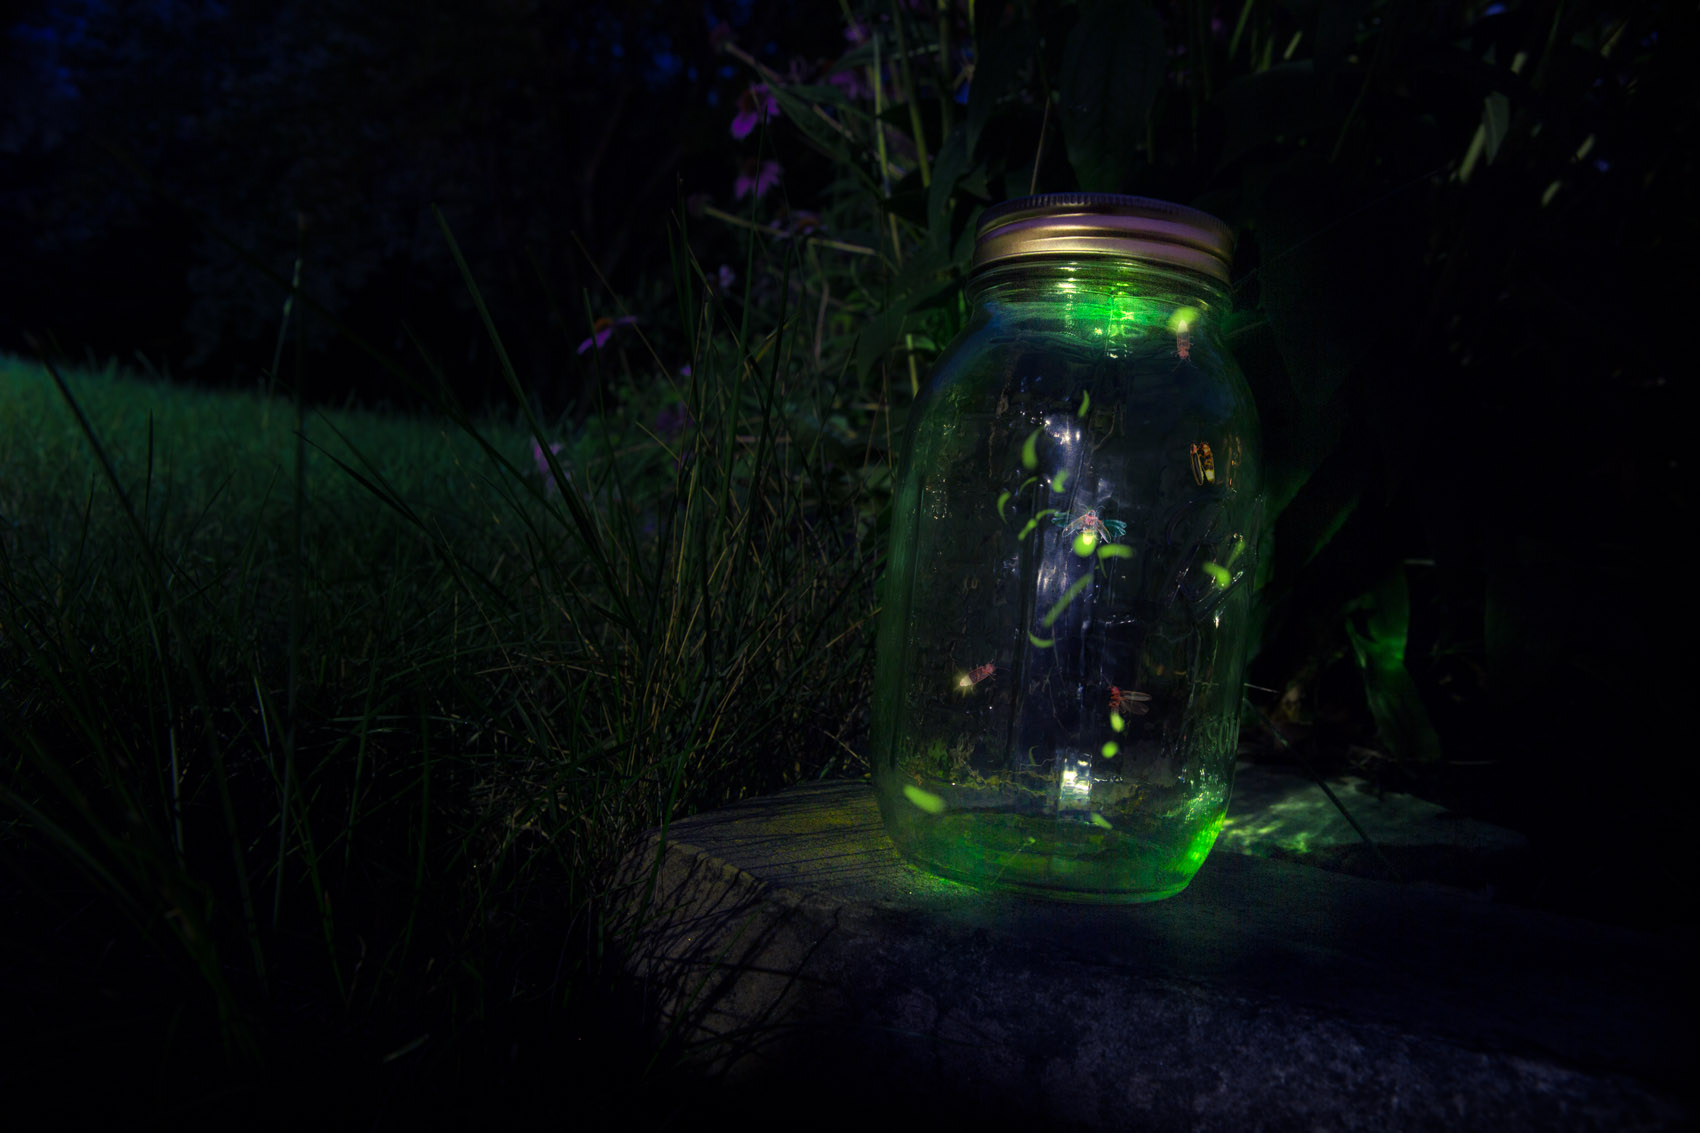 A glowing green mason jar contains a few fireflies in flight.